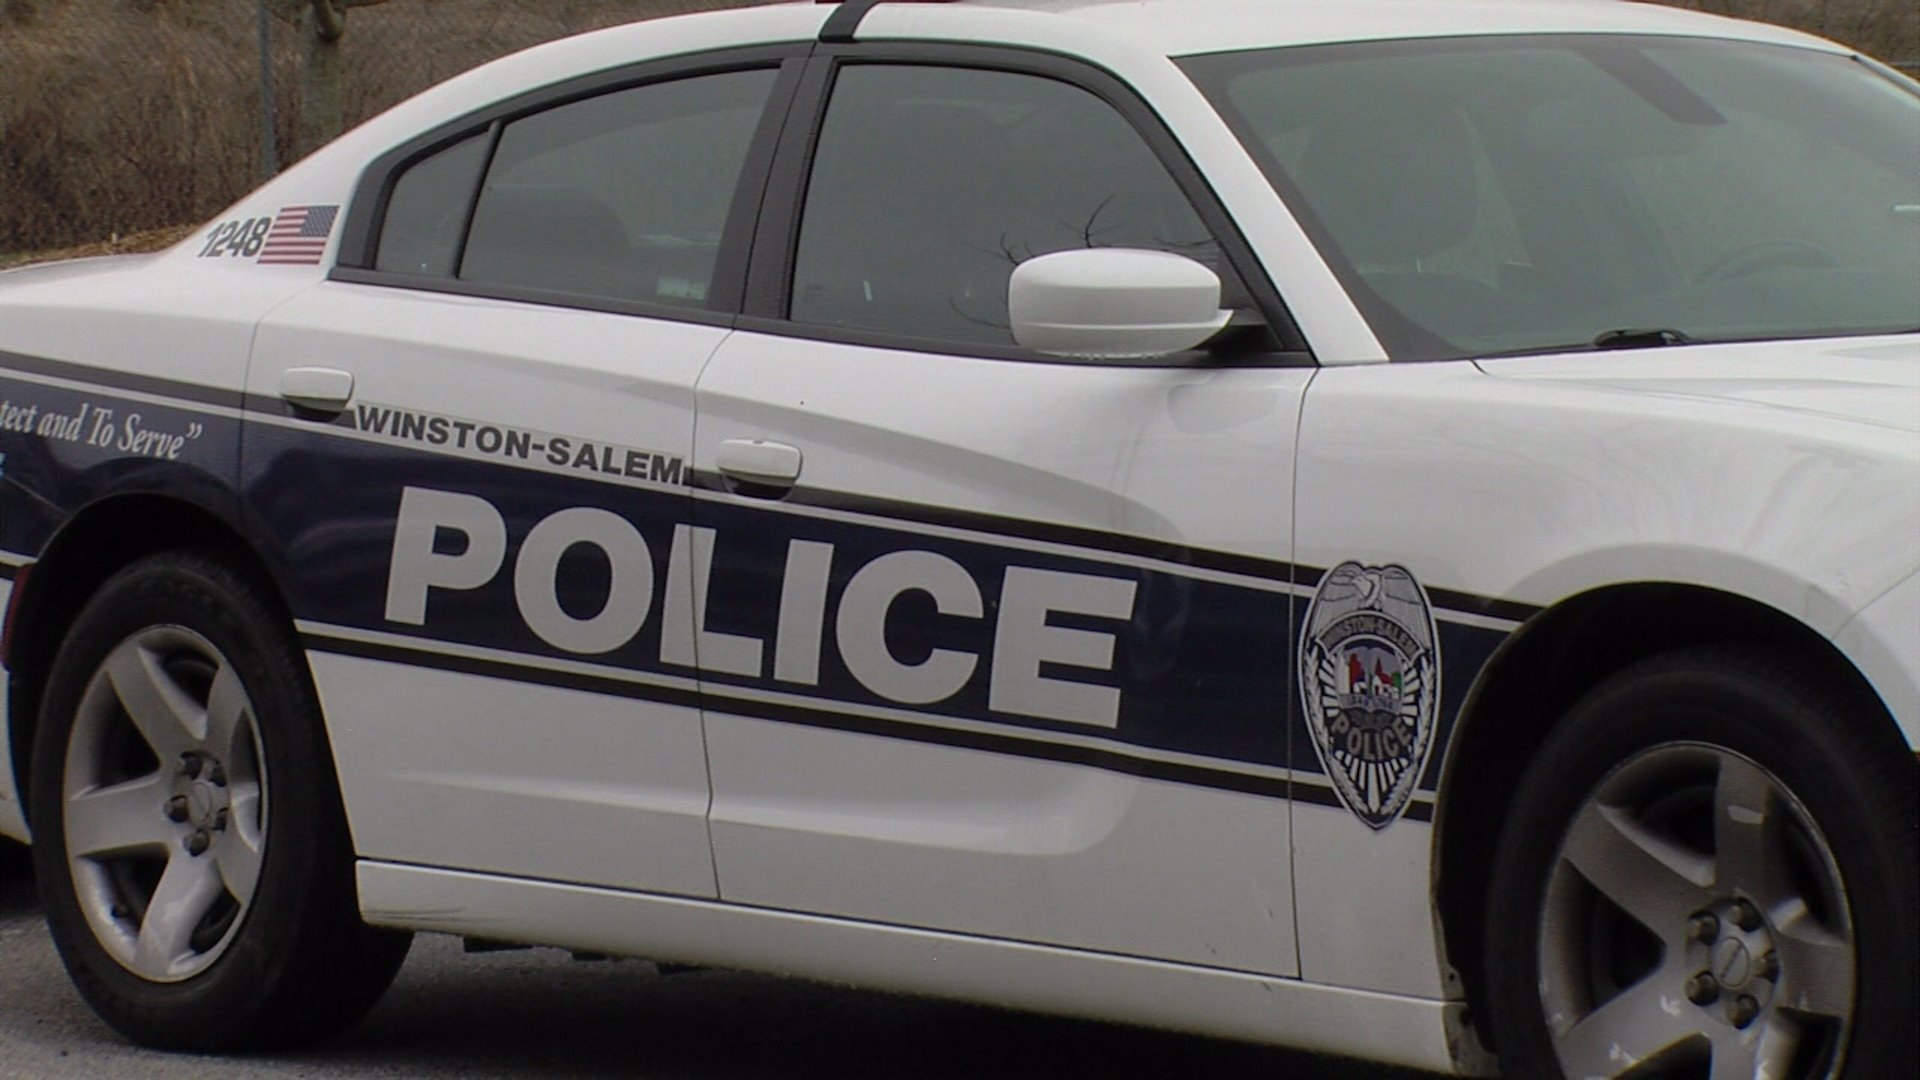 Winston-Salem police file photo (WGHP)